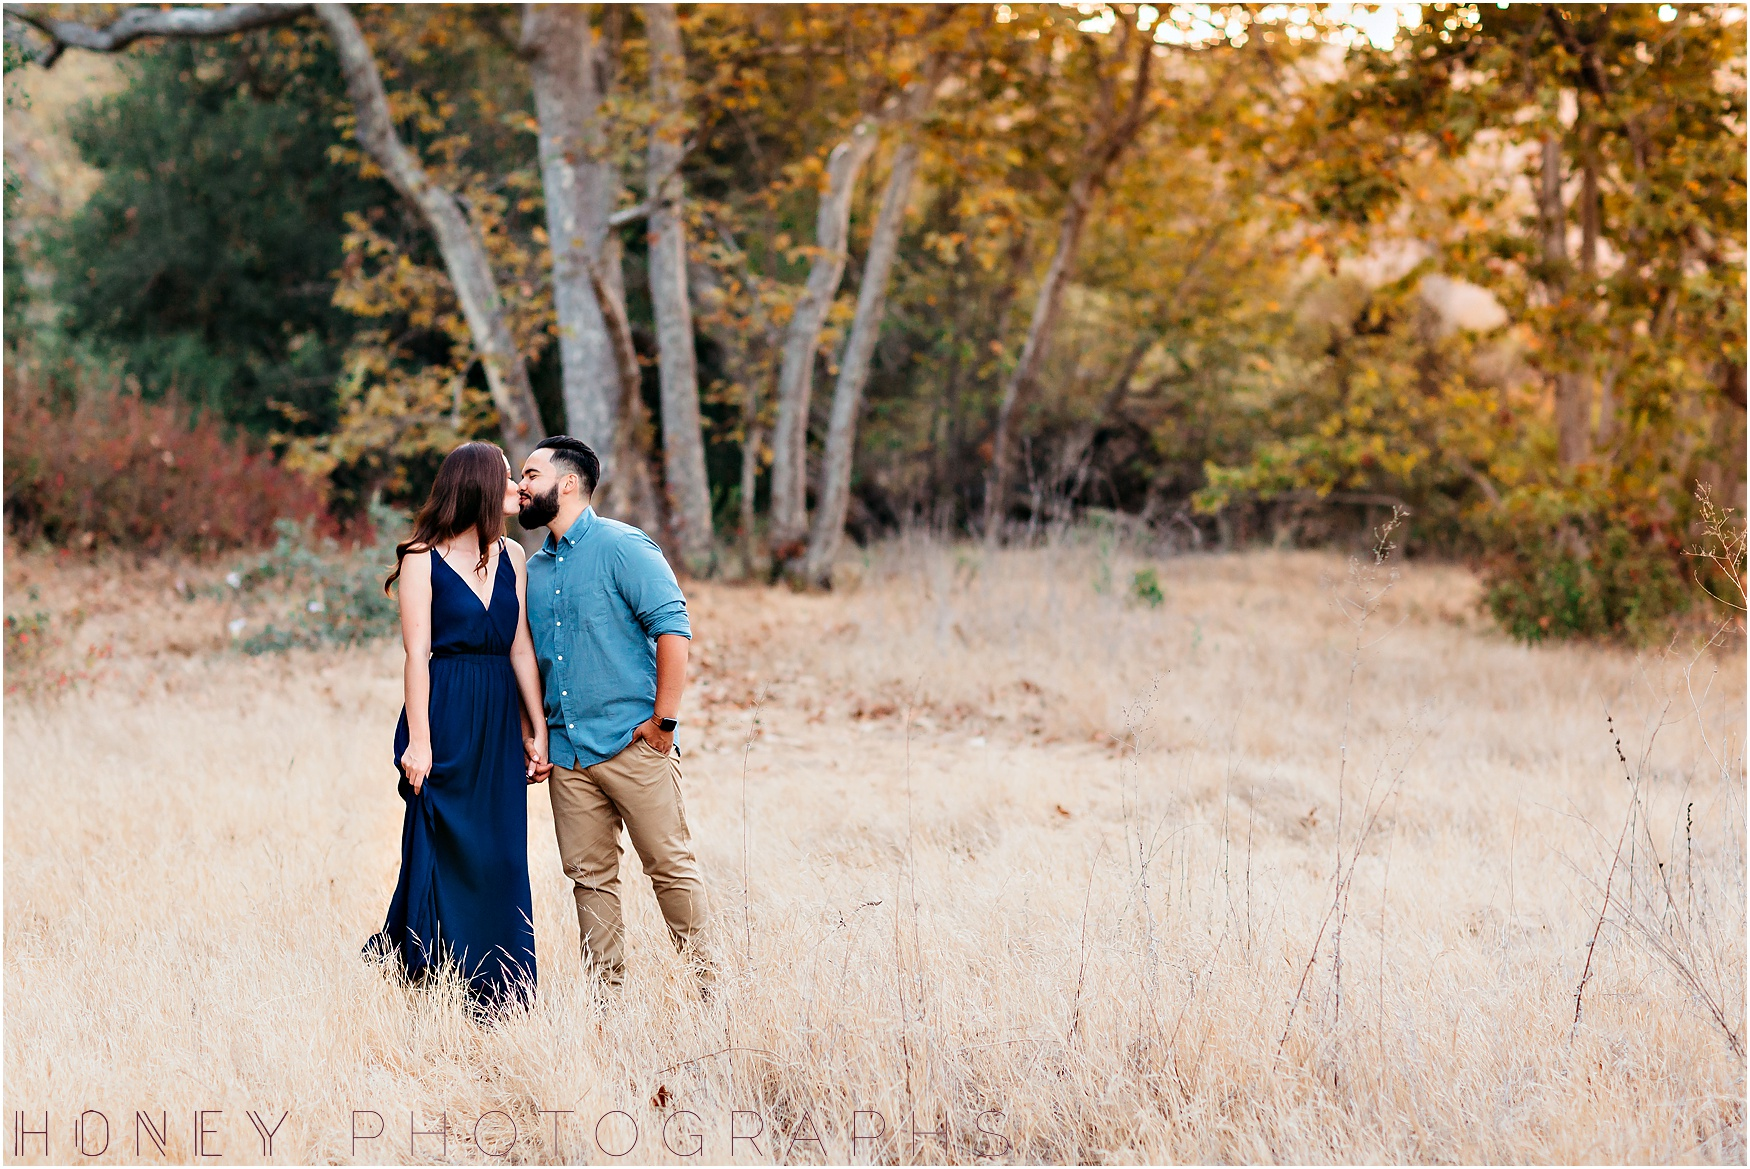 marian_bear_sunset_woods_san_diego_engagement024.jpg